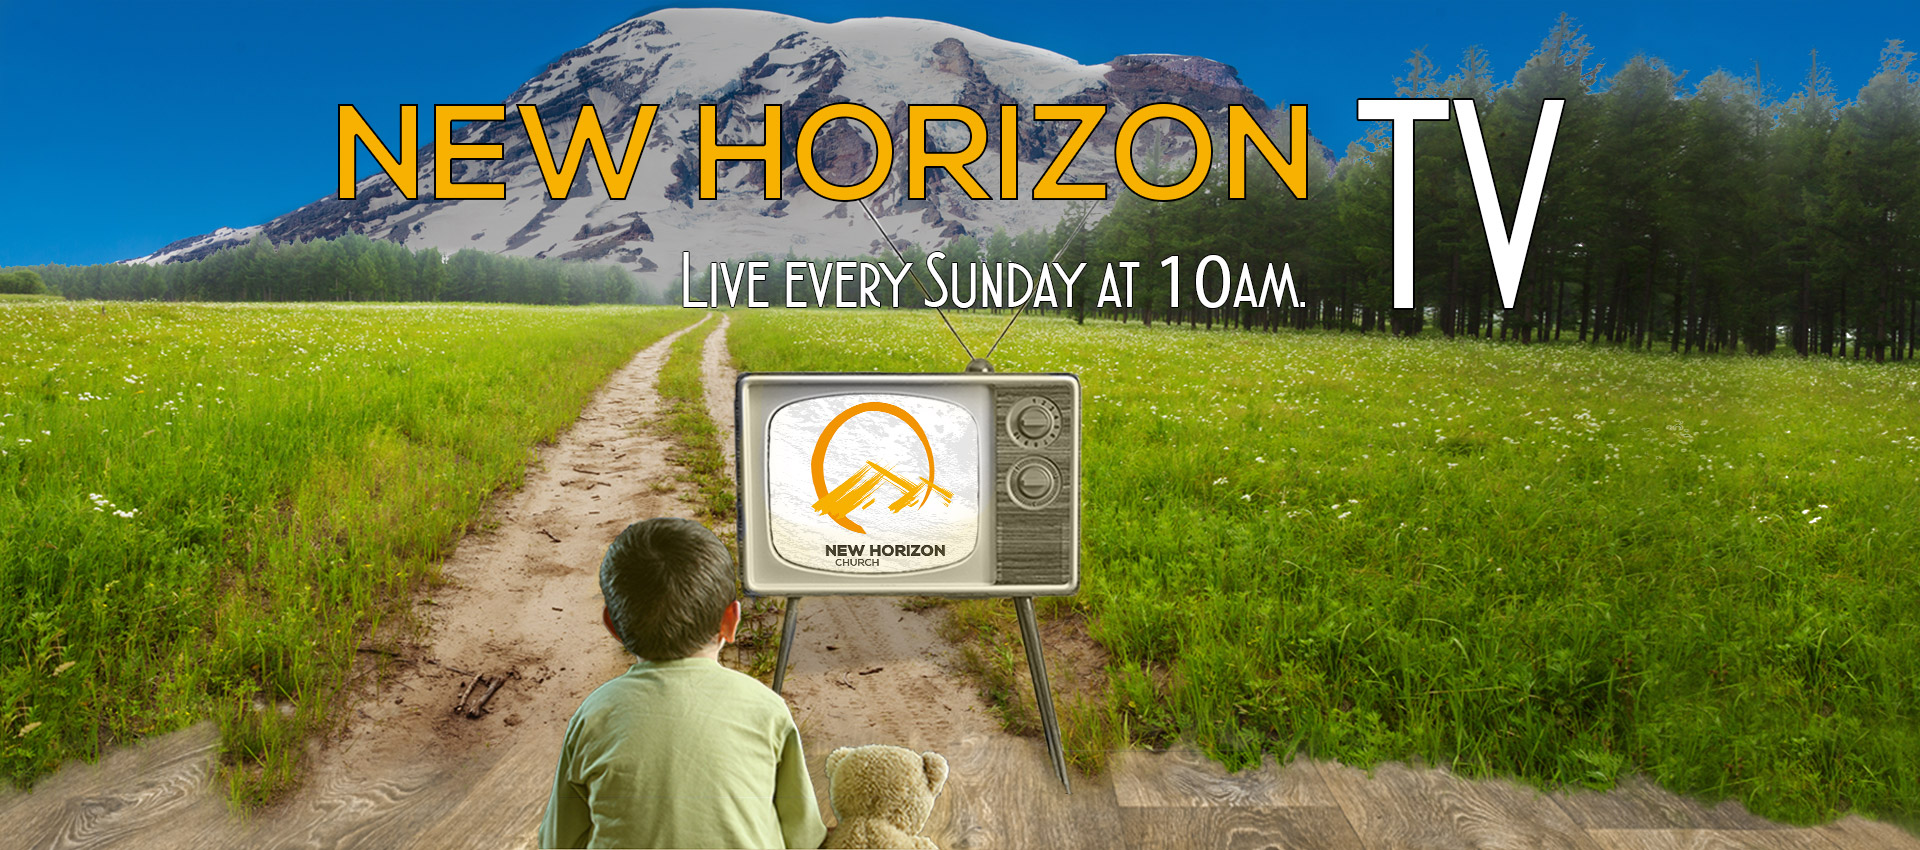 New Horizon TV - Sundays at 10AM